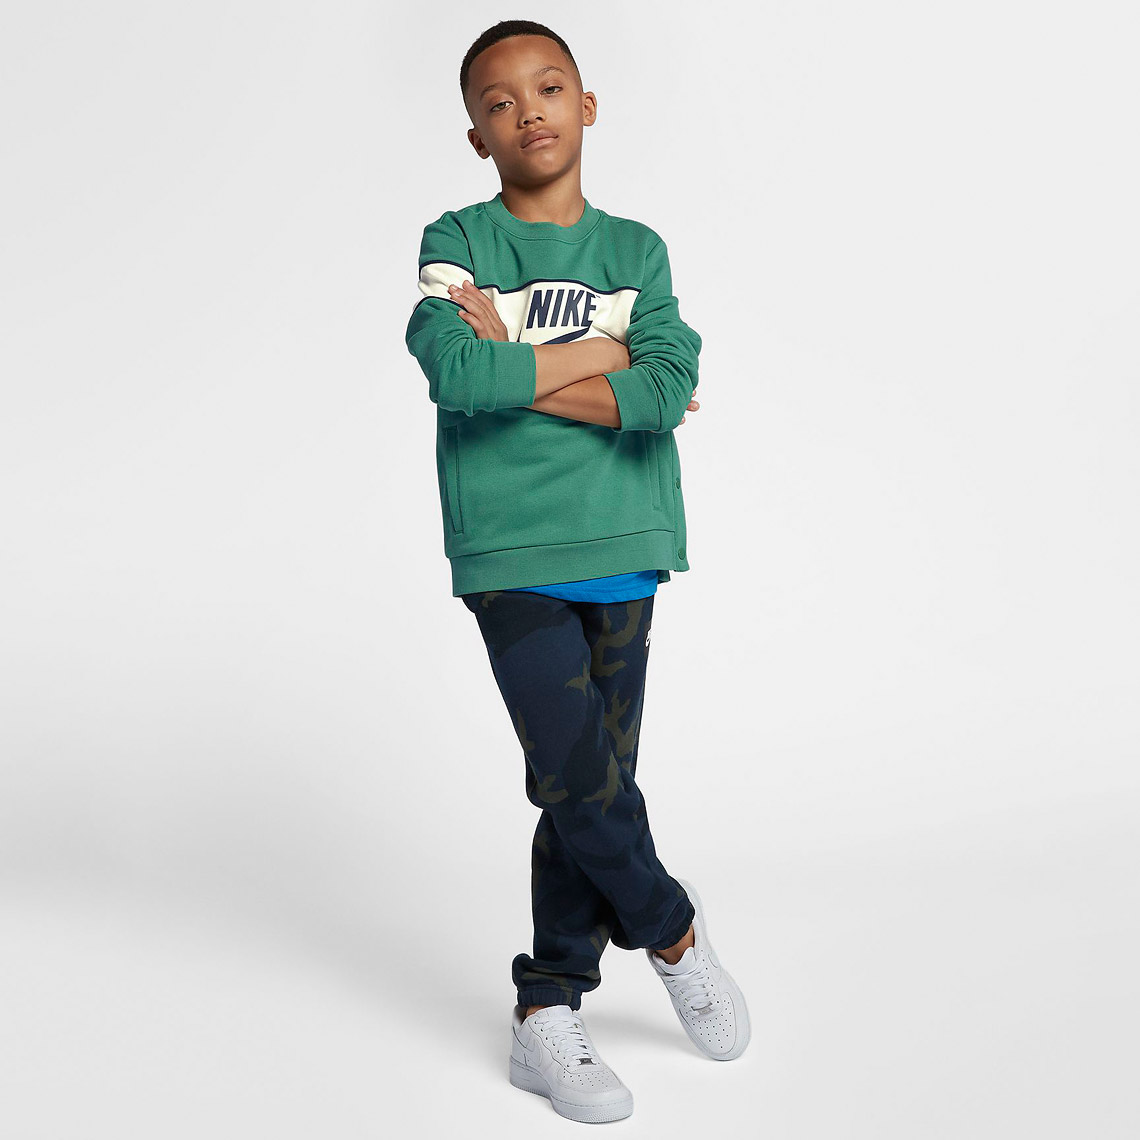 sportswear-big-kids-boys-long-sleeve-crew-top-nXAg4ogh